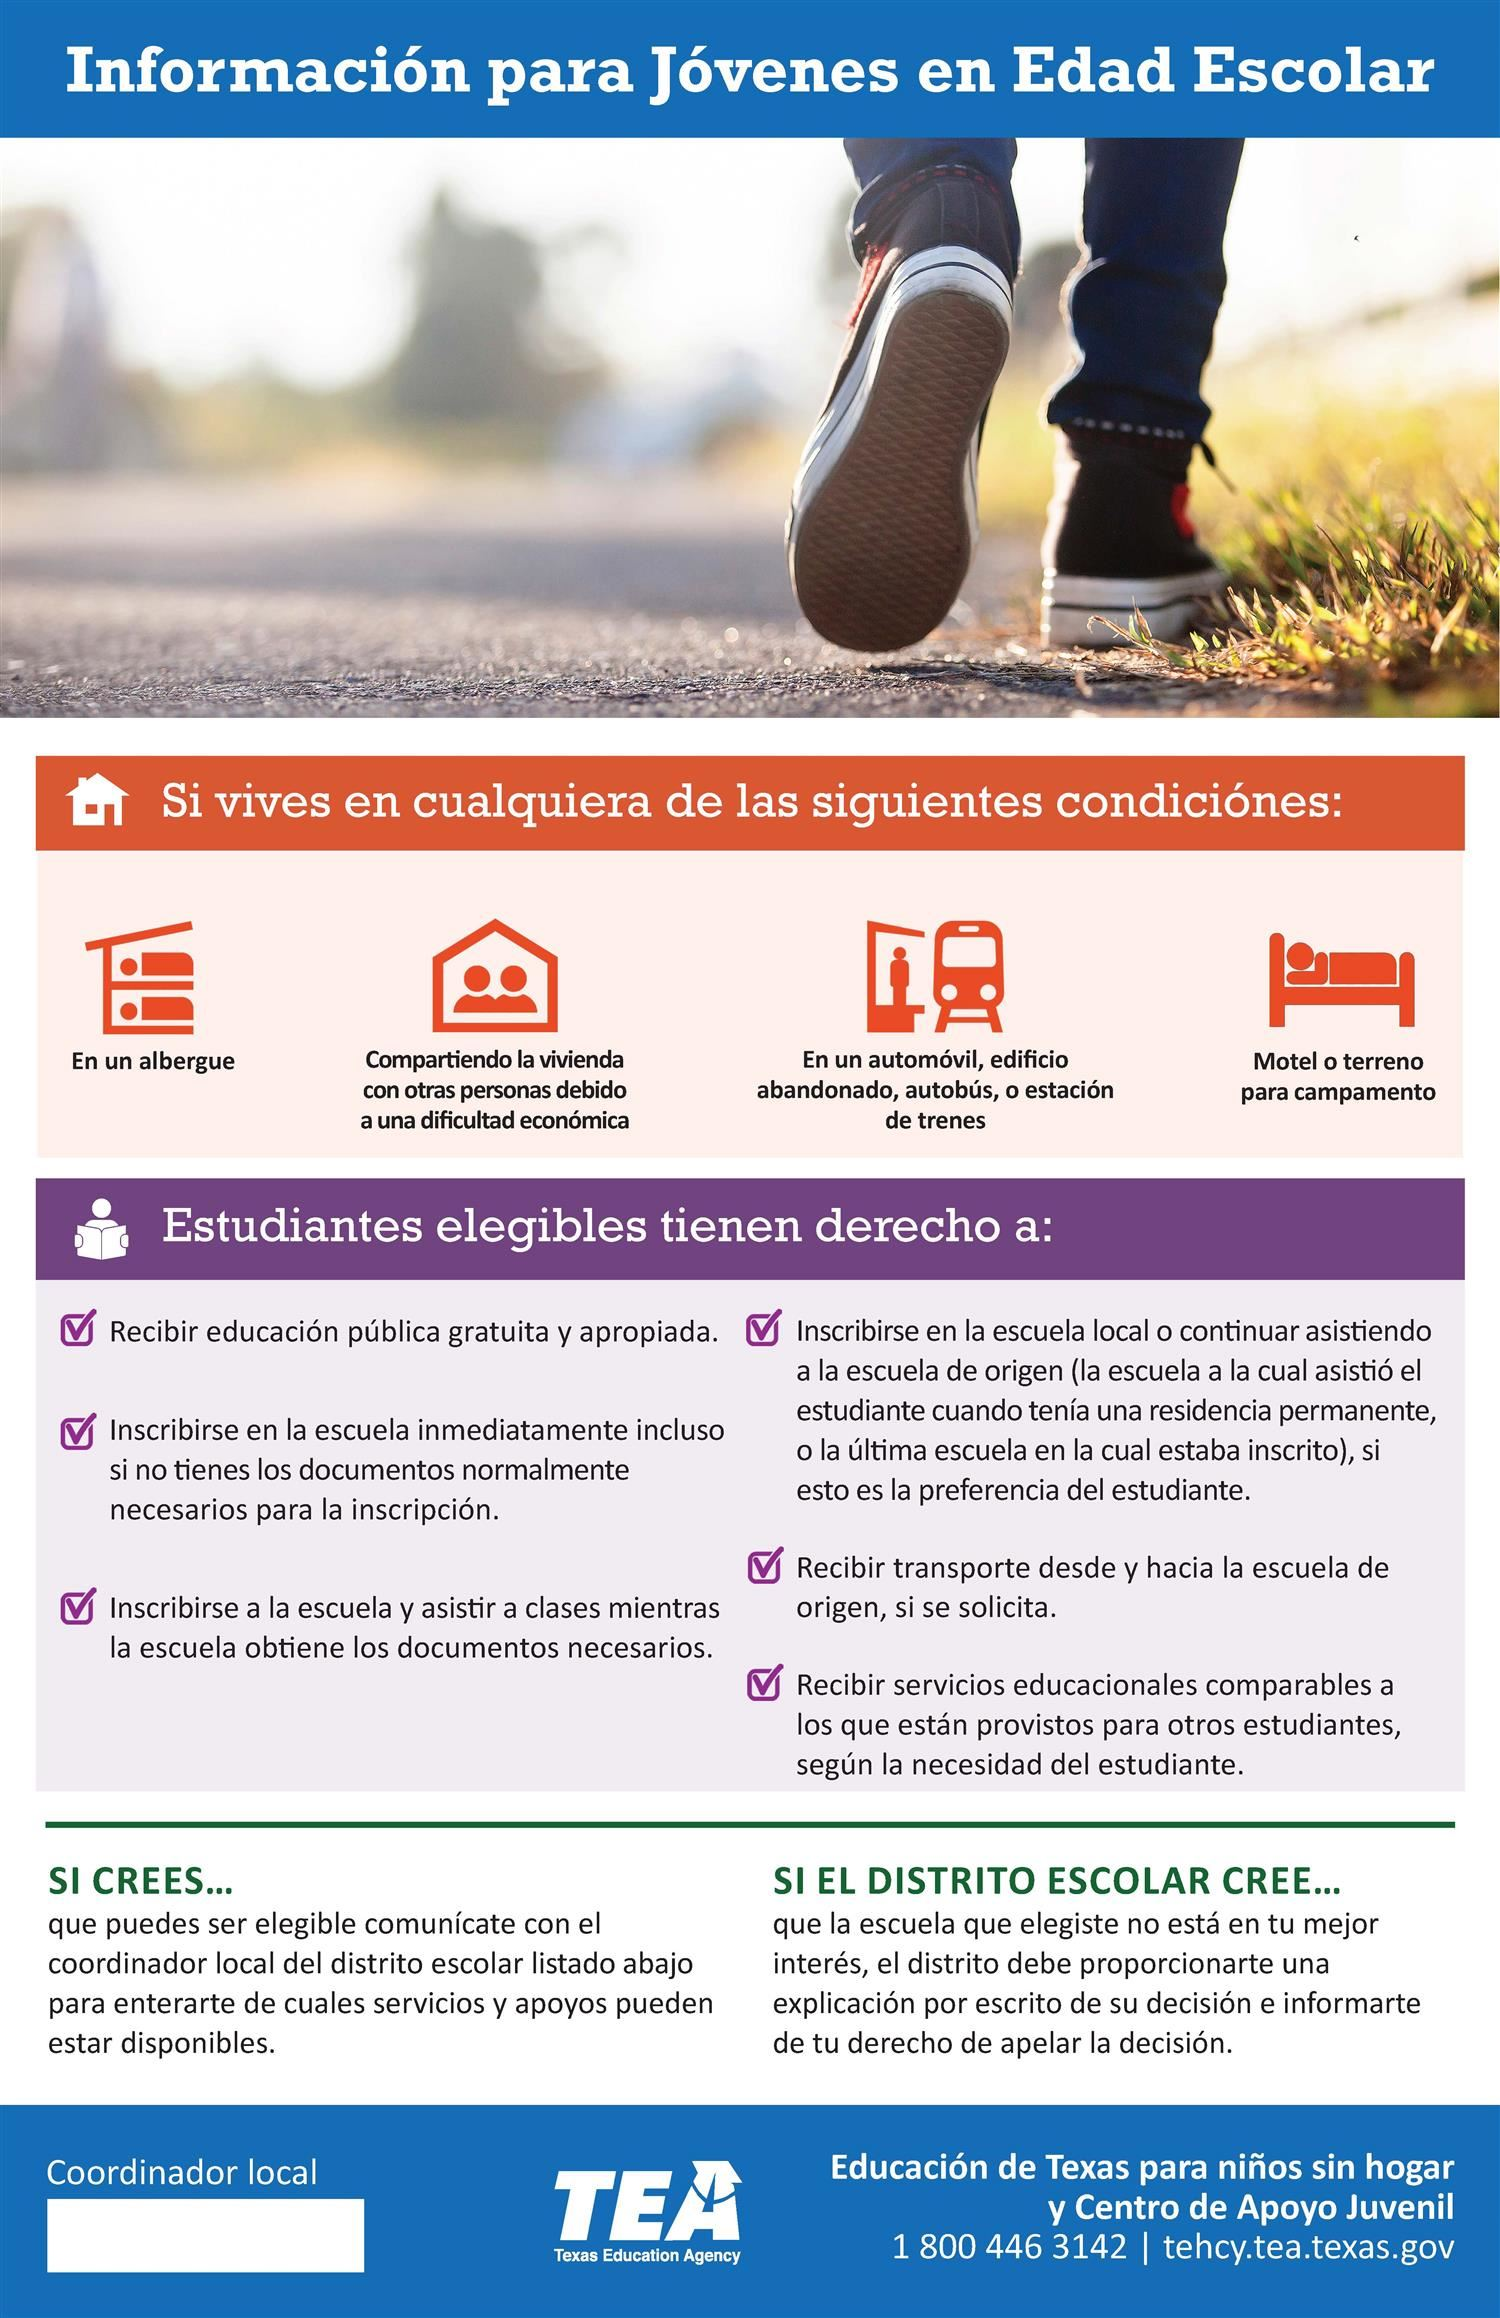 Picture of McKinney-Vento Homeless Education Program Requirements in Spanish for Youth